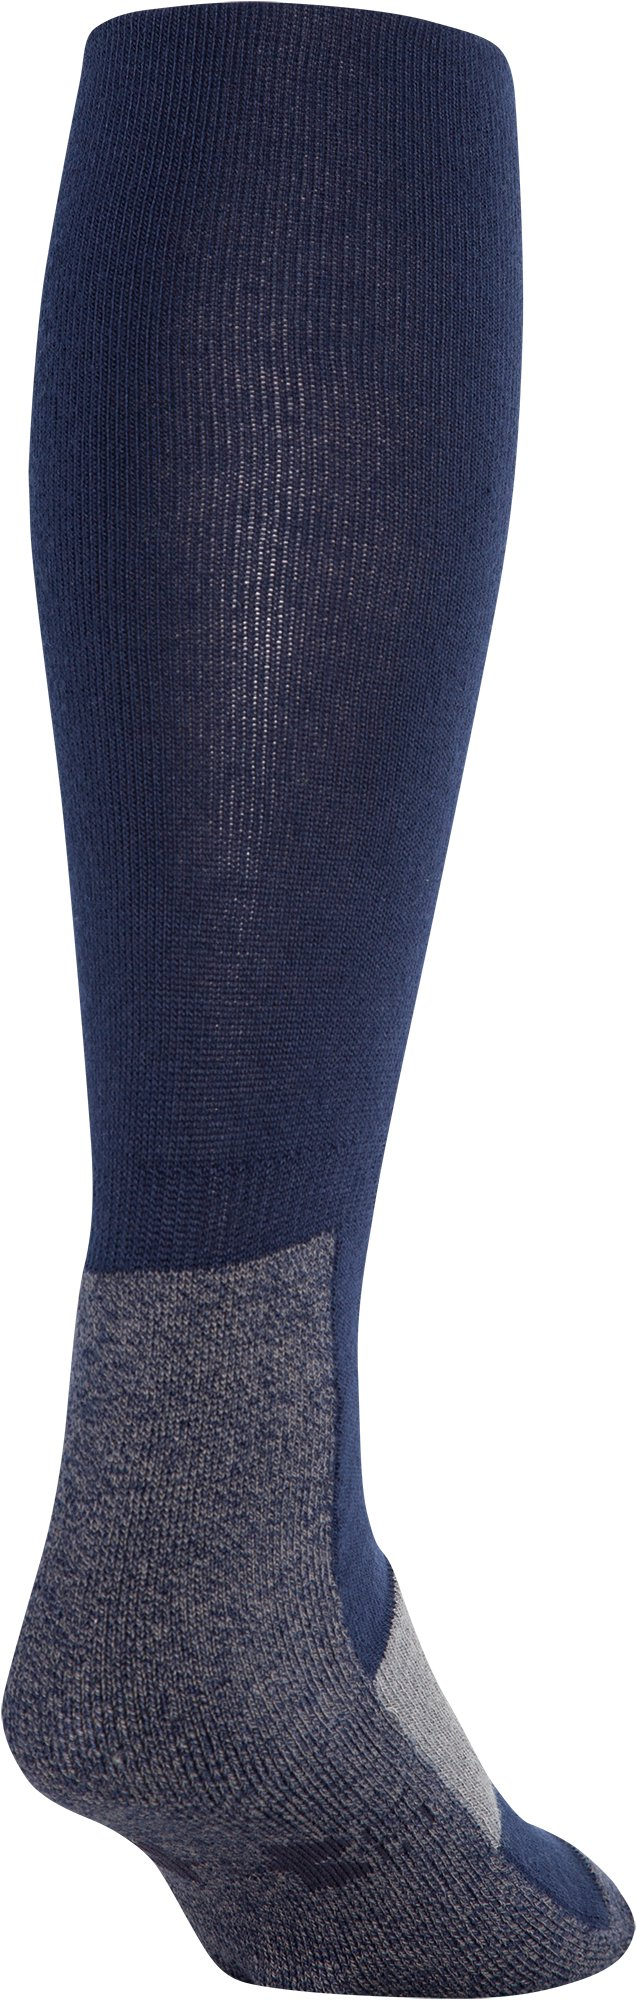 Men's UA Performance OTC Socks, Midnight Navy